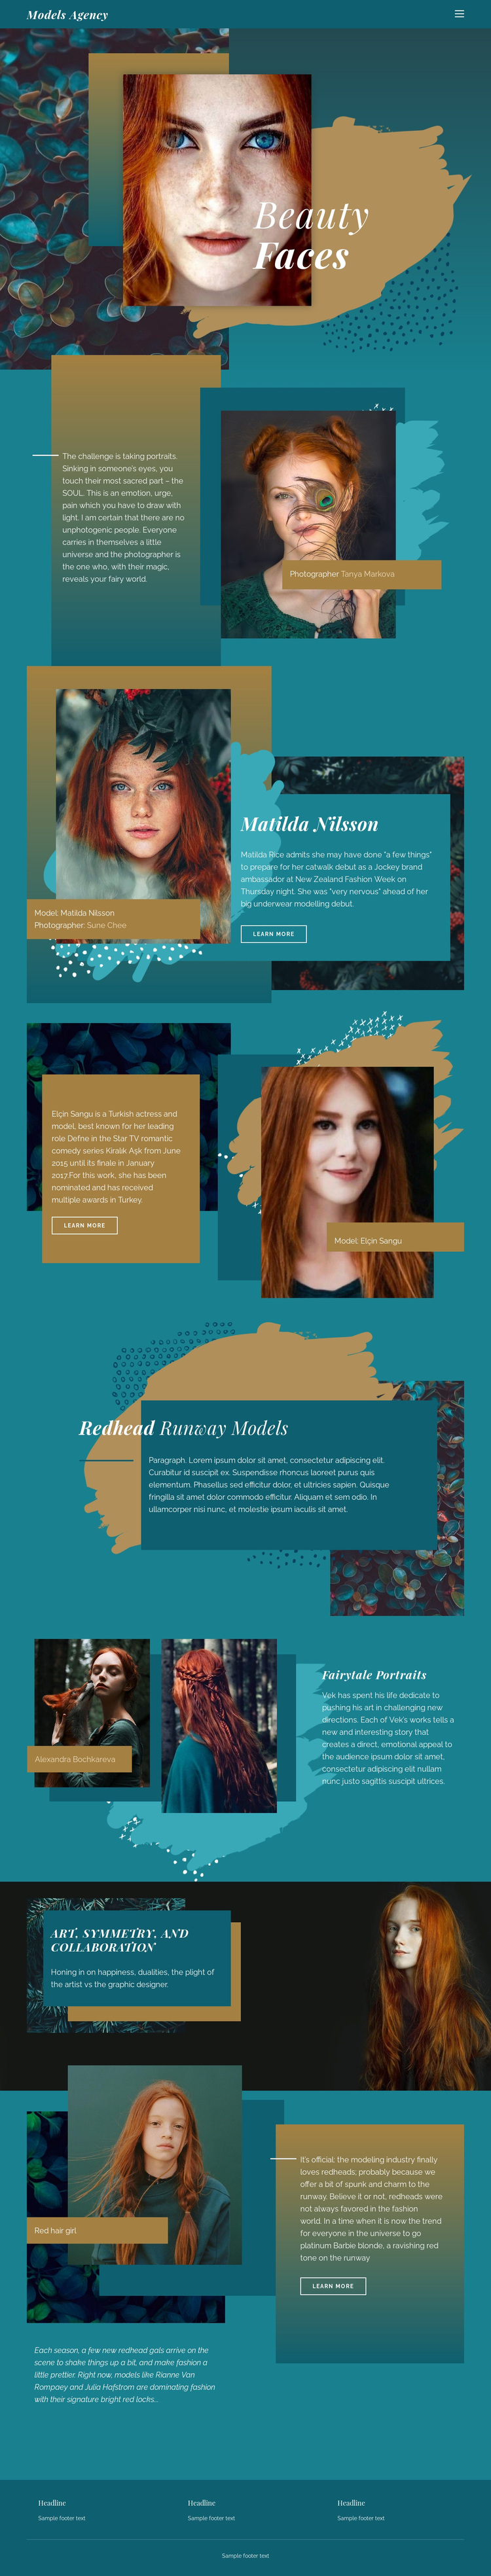 Faces of modern fashion Joomla Page Builder